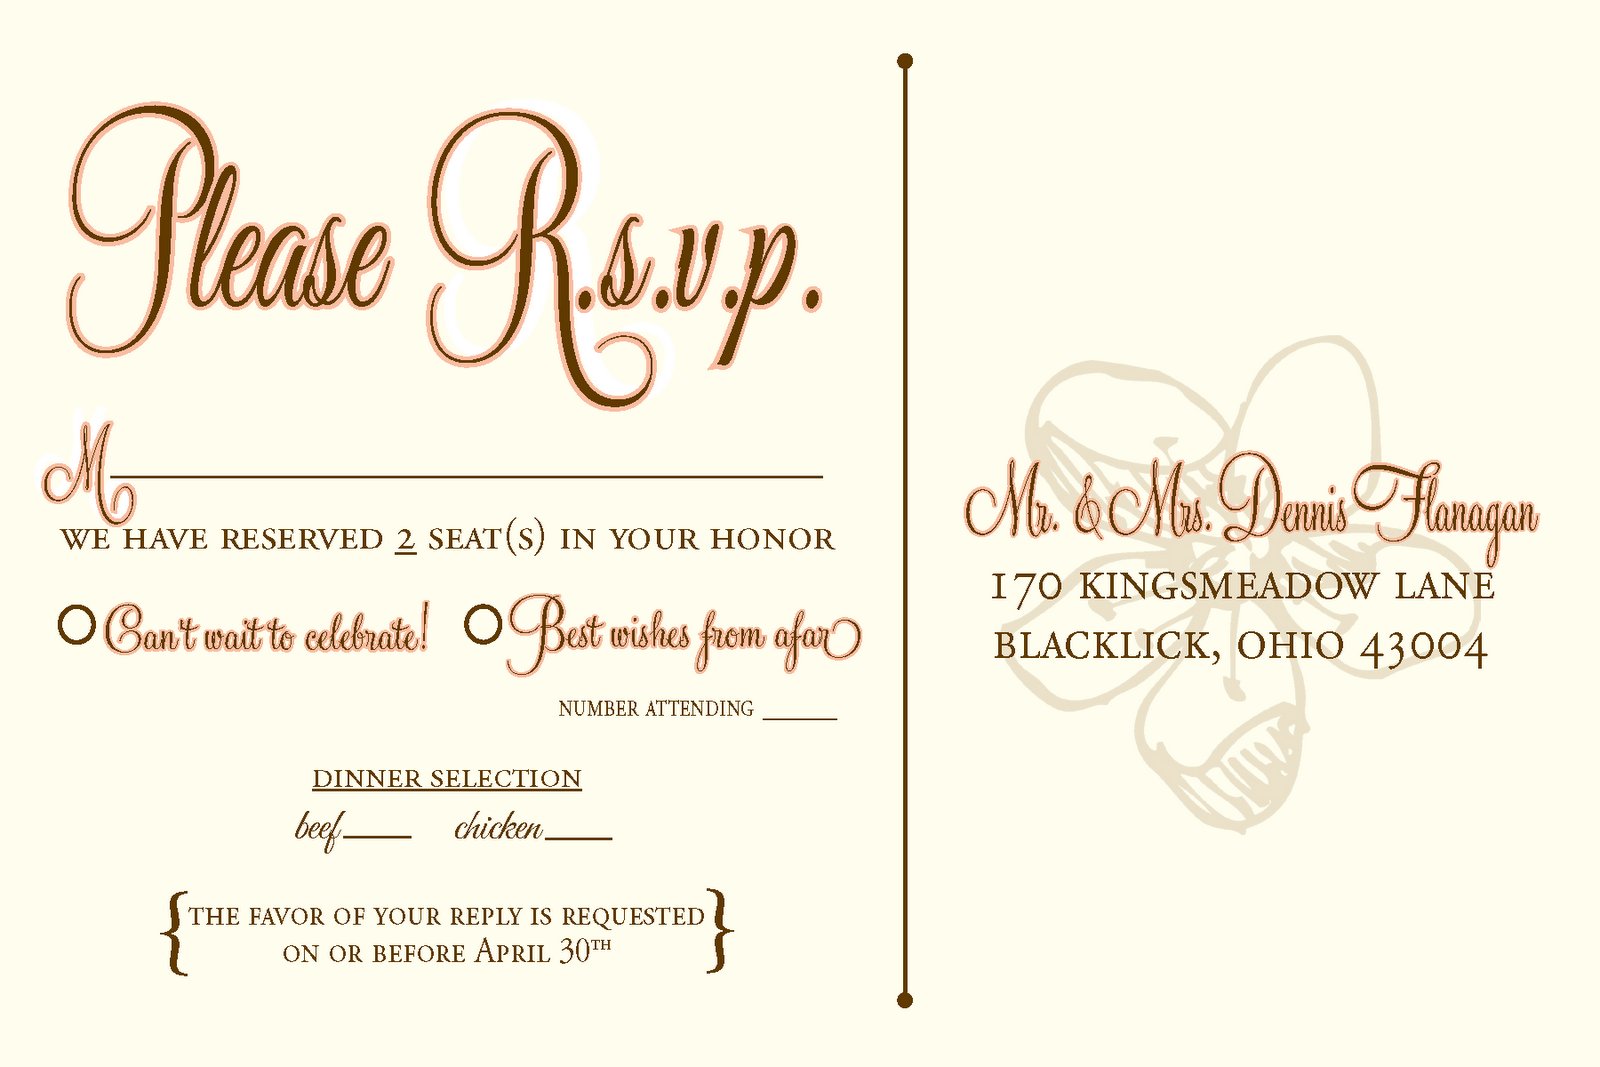 Wedding Card Invitation Messages: Wedding Rsvp Wording - Google Search